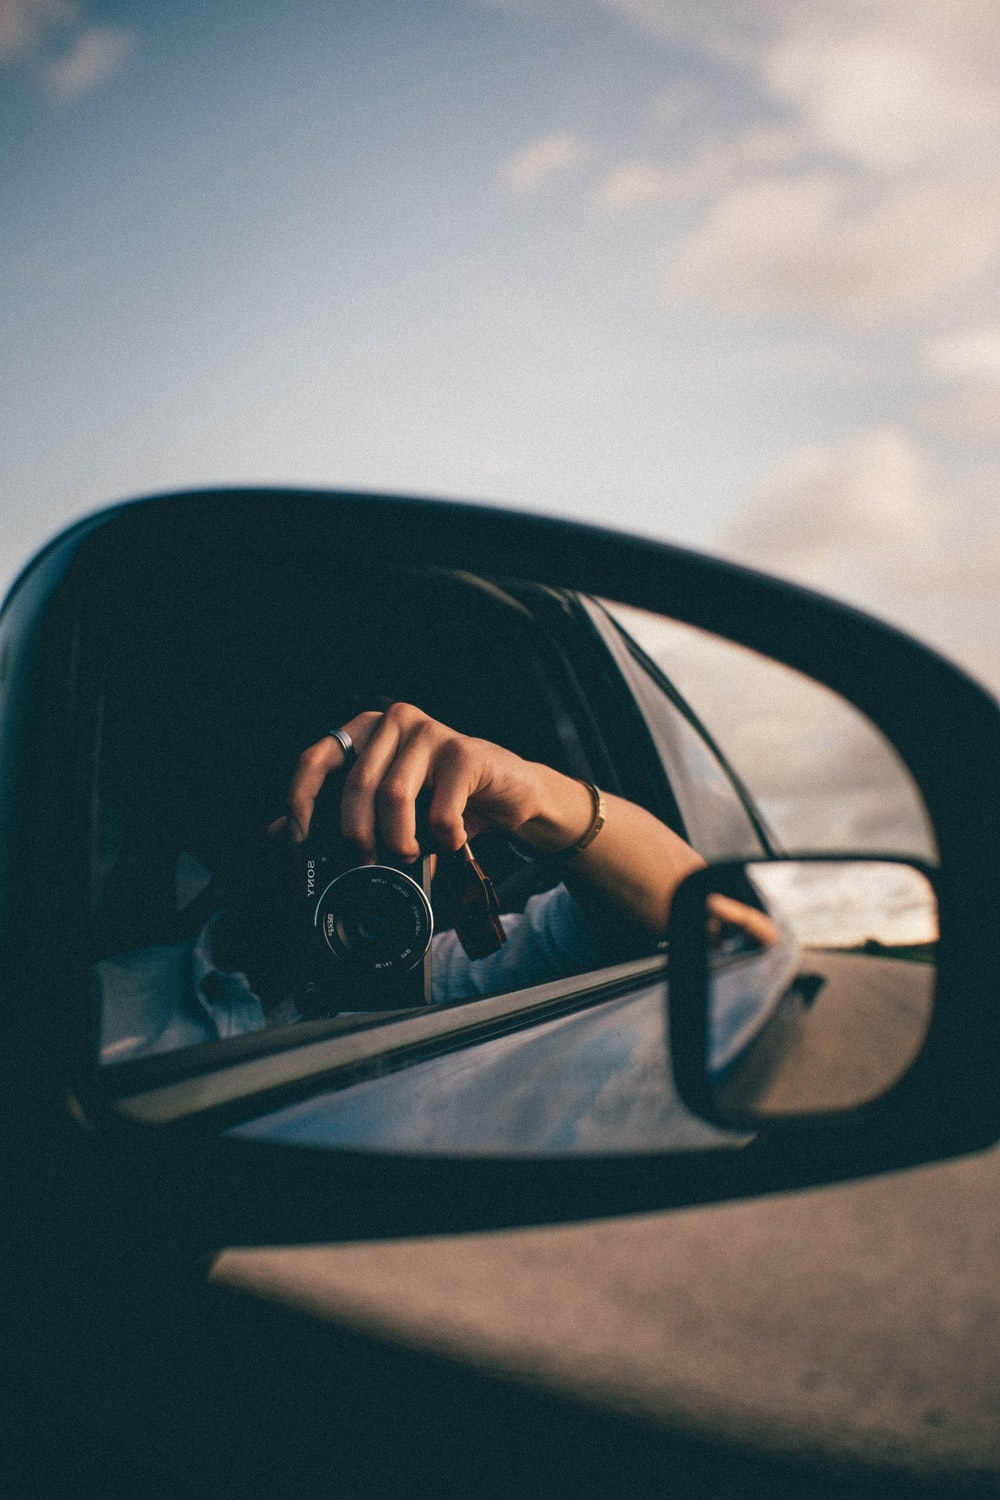 person using camera at the side mirror